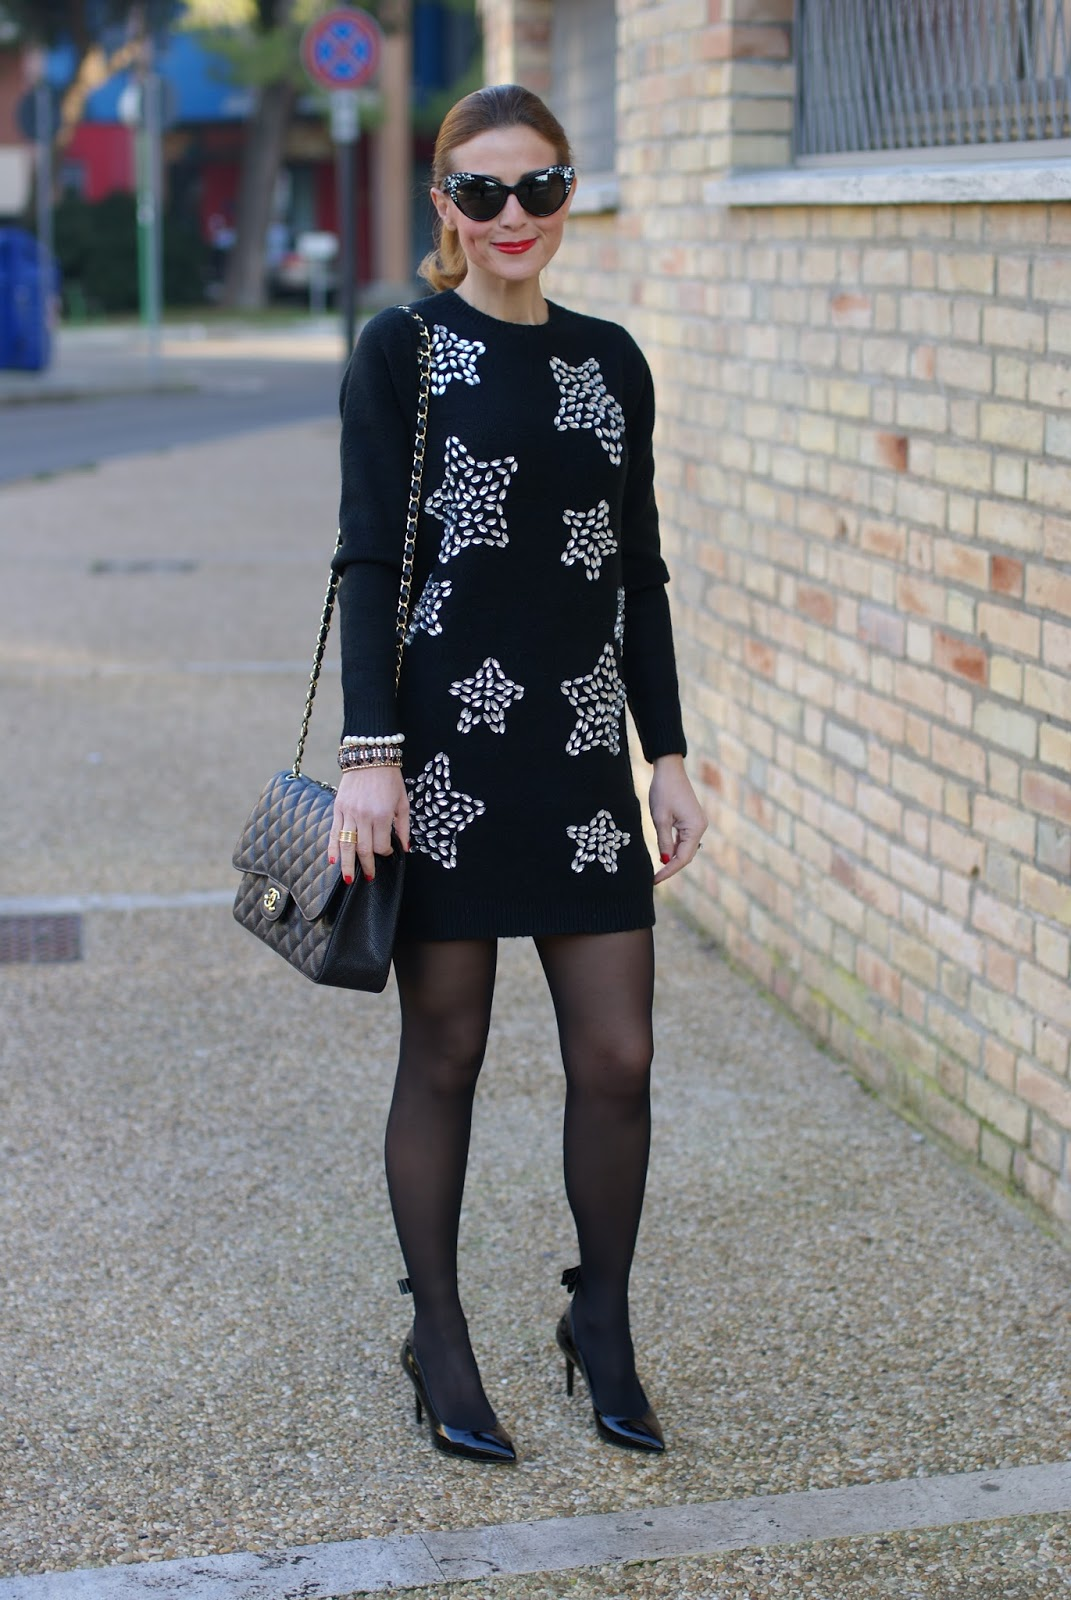 starry jeweled dress, total black outfit, sergio amaranti bekate heels and chanel 2.55 bag on Fashion and Cookies fashion blog, fashion blogger style